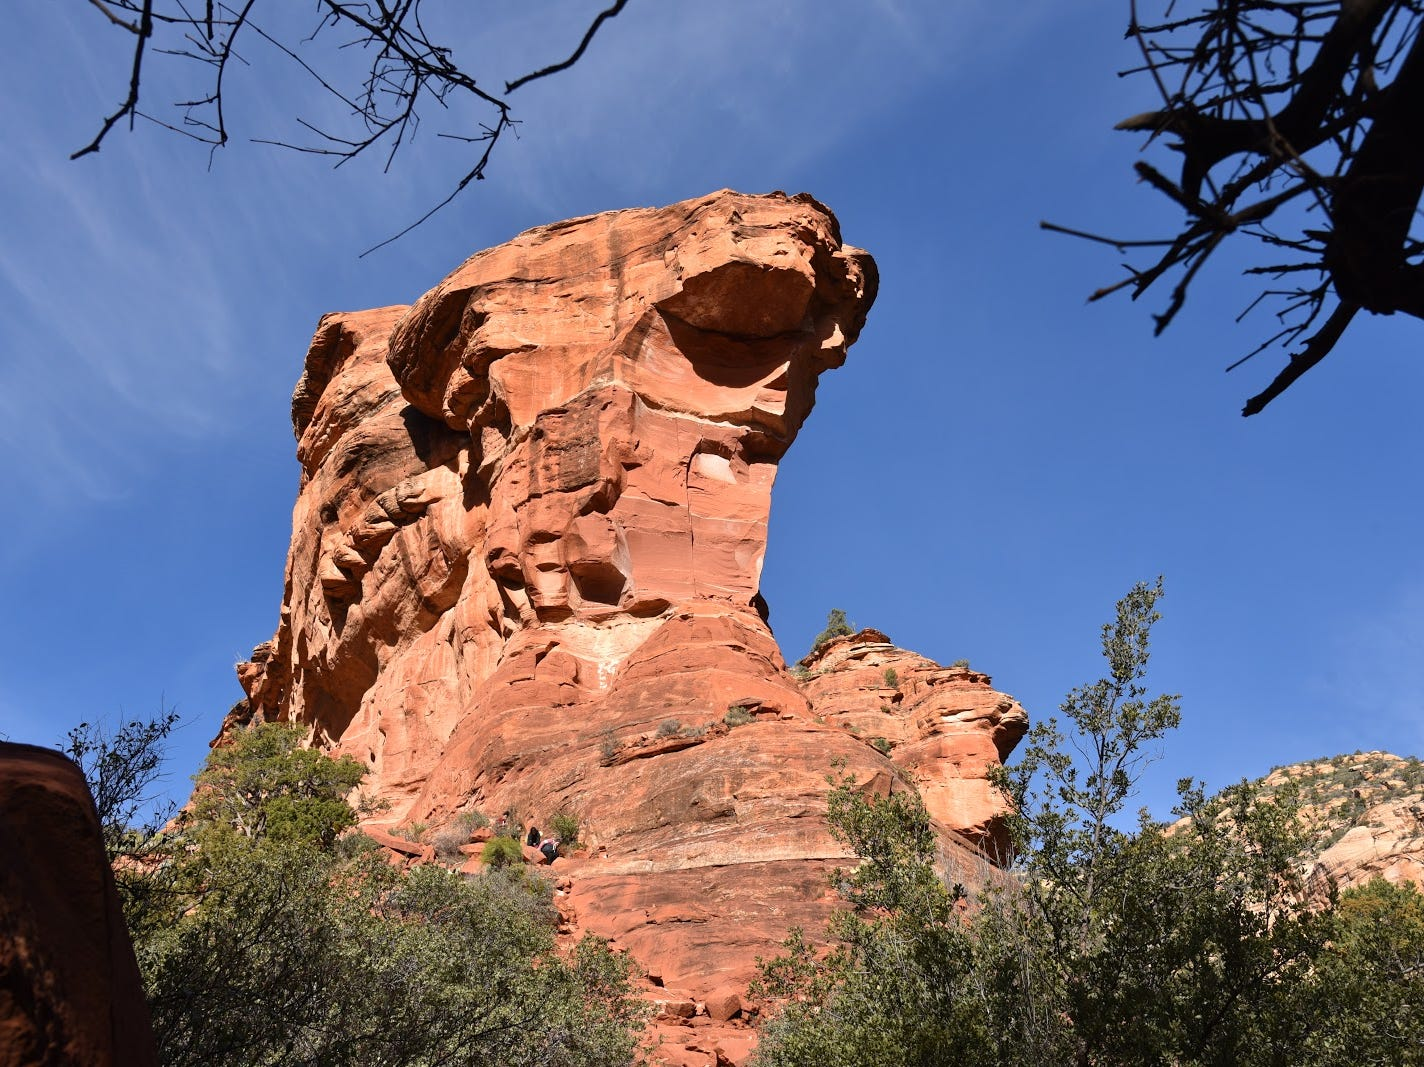 What will you see in Fay Canyon's red rocks?